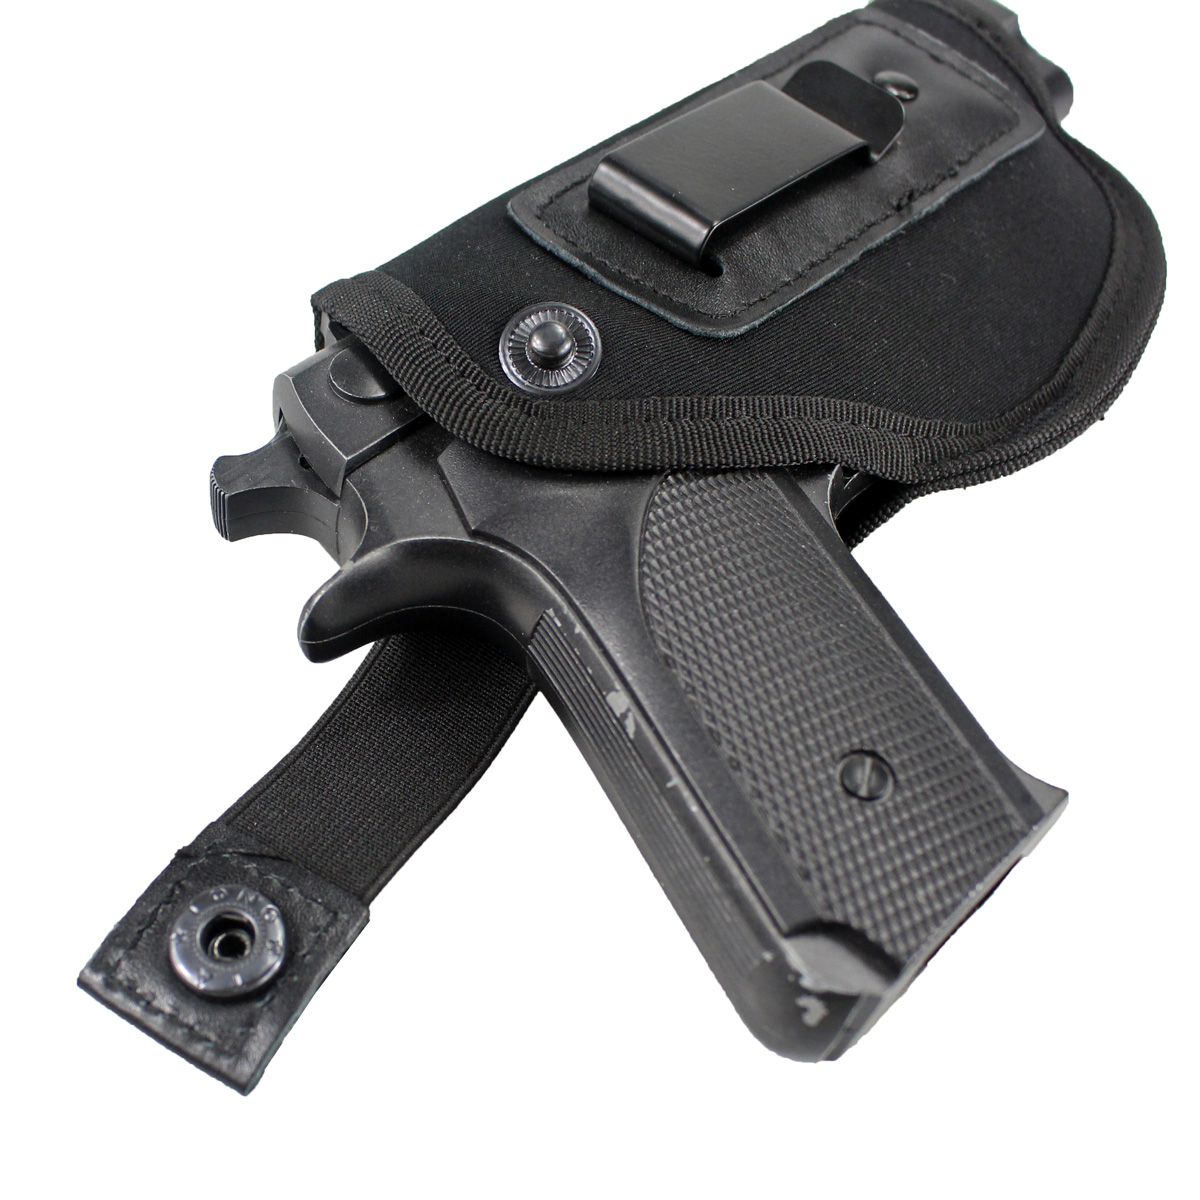 Image 4 - Tactical Concealed Carry Universal Neoprene IWB Holster with Extra Mag Holster for Right Hand-in Holsters from Sports & Entertainment